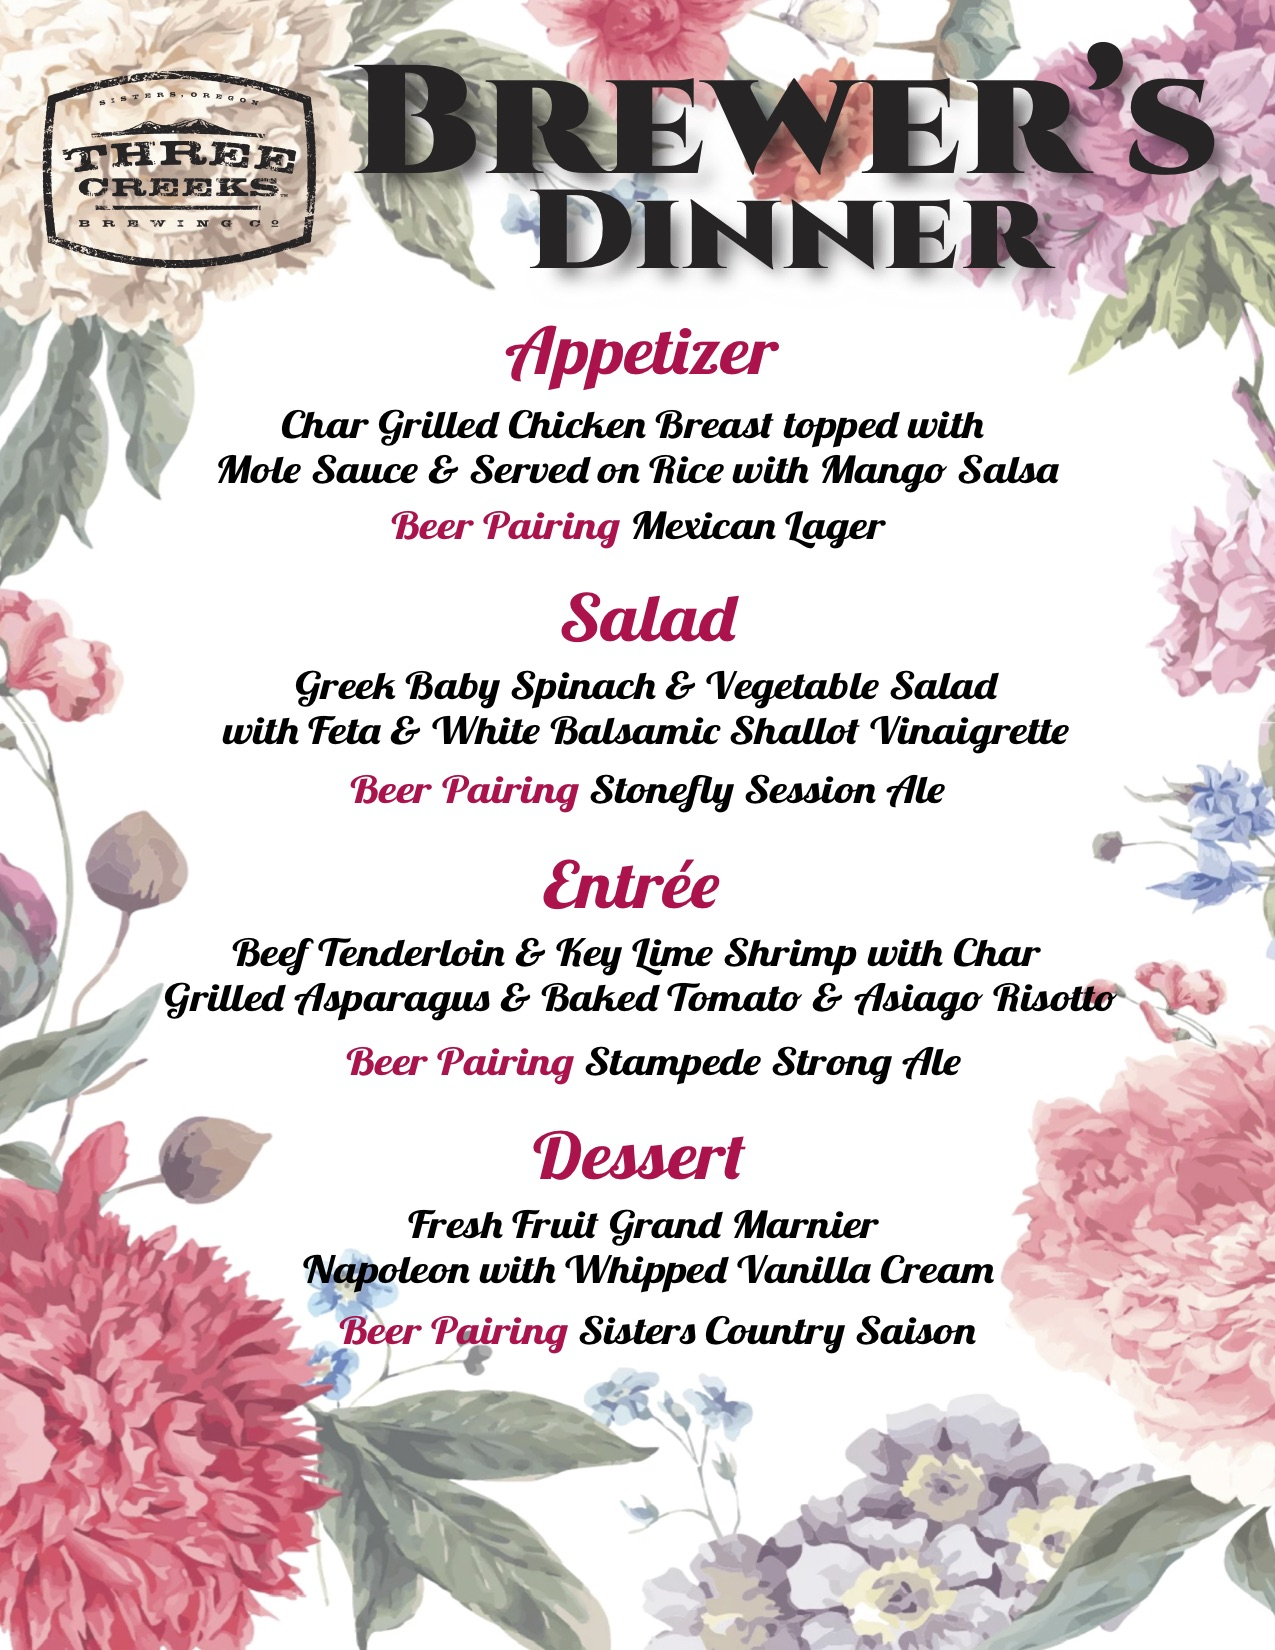 Spring Brewers Dinner Menu copy.jpg